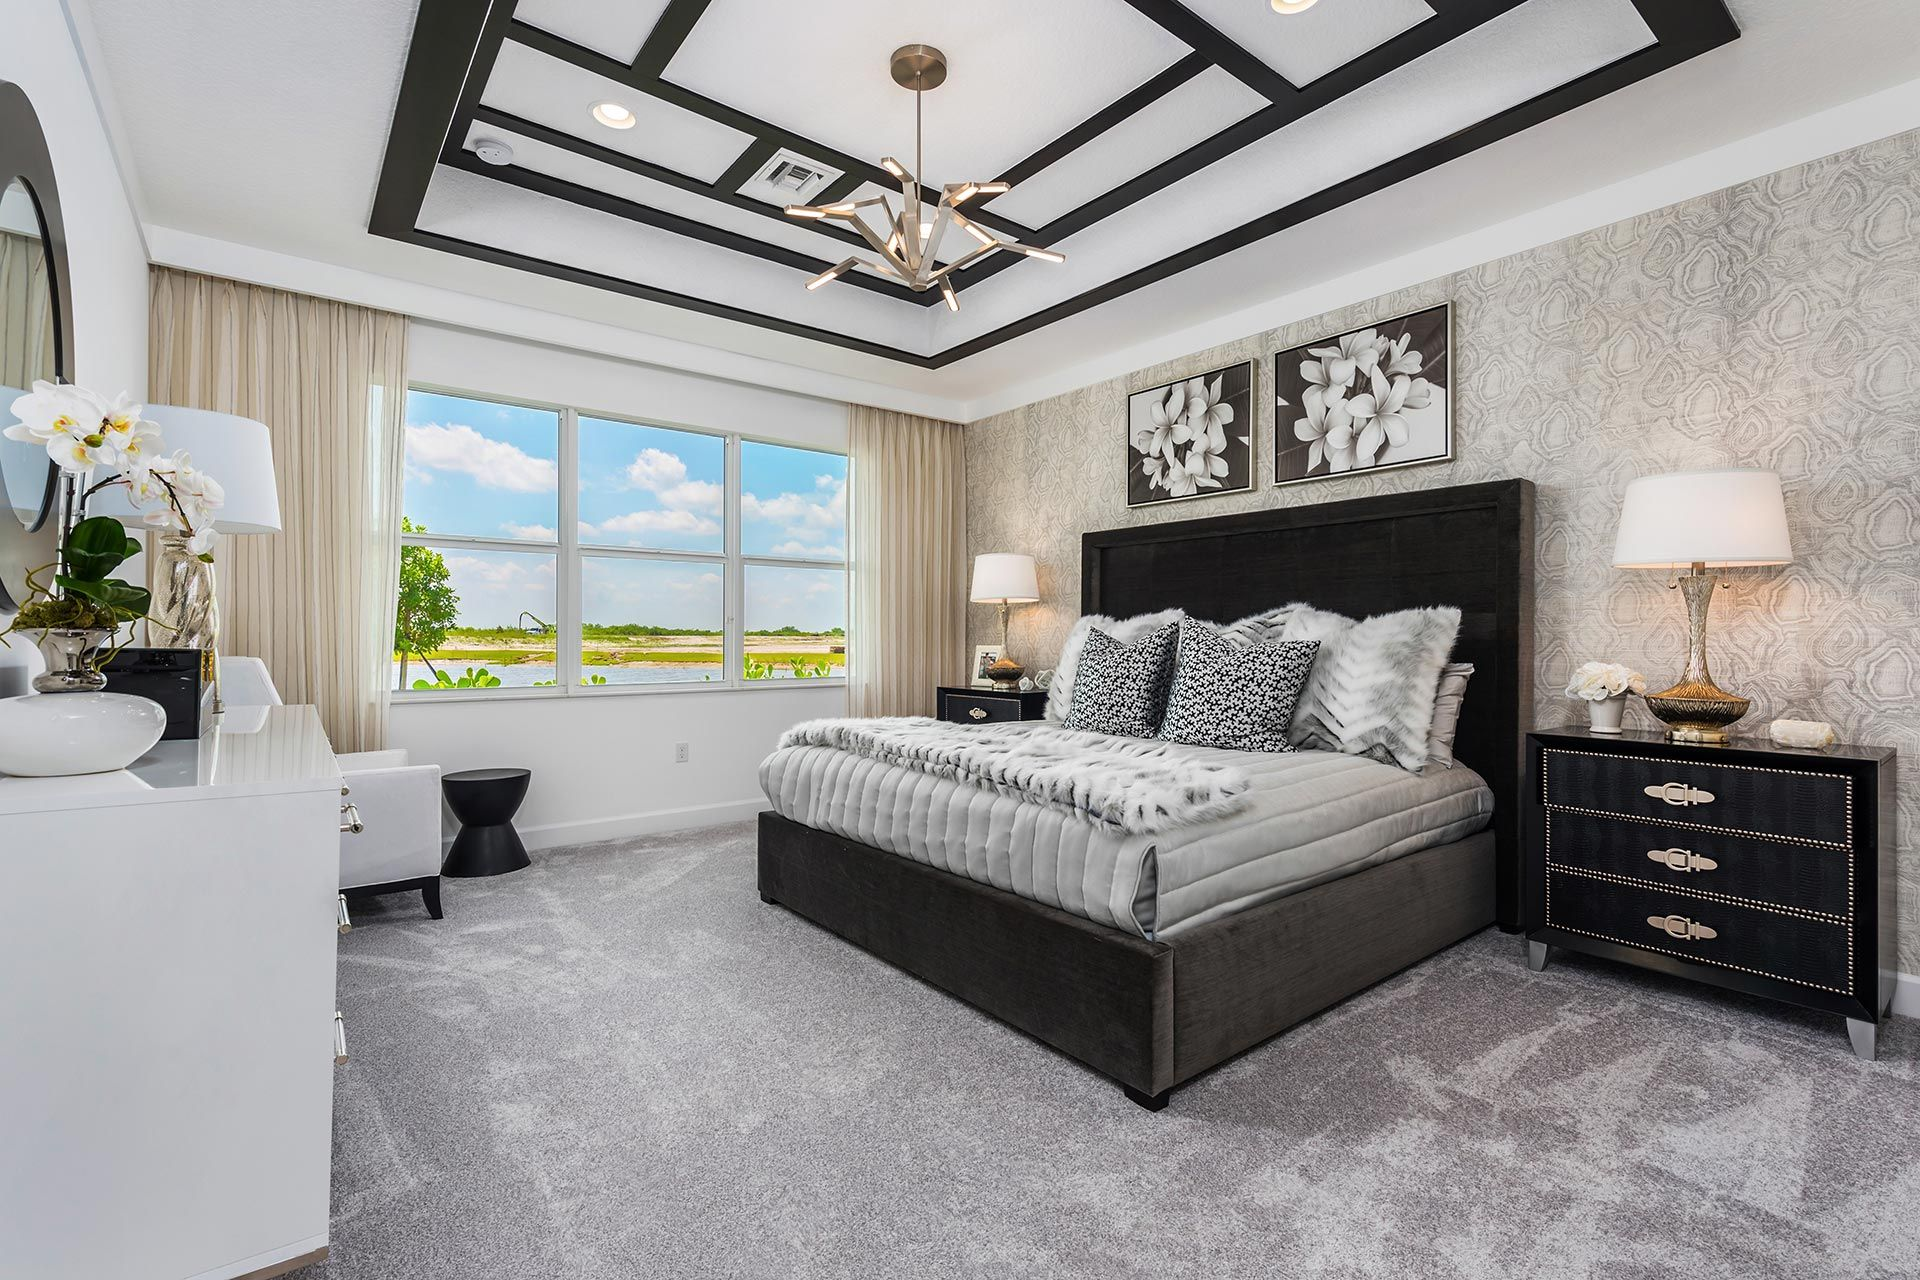 Bedroom featured in the Atlantica By GL Homes in Martin-St. Lucie-Okeechobee Counties, FL